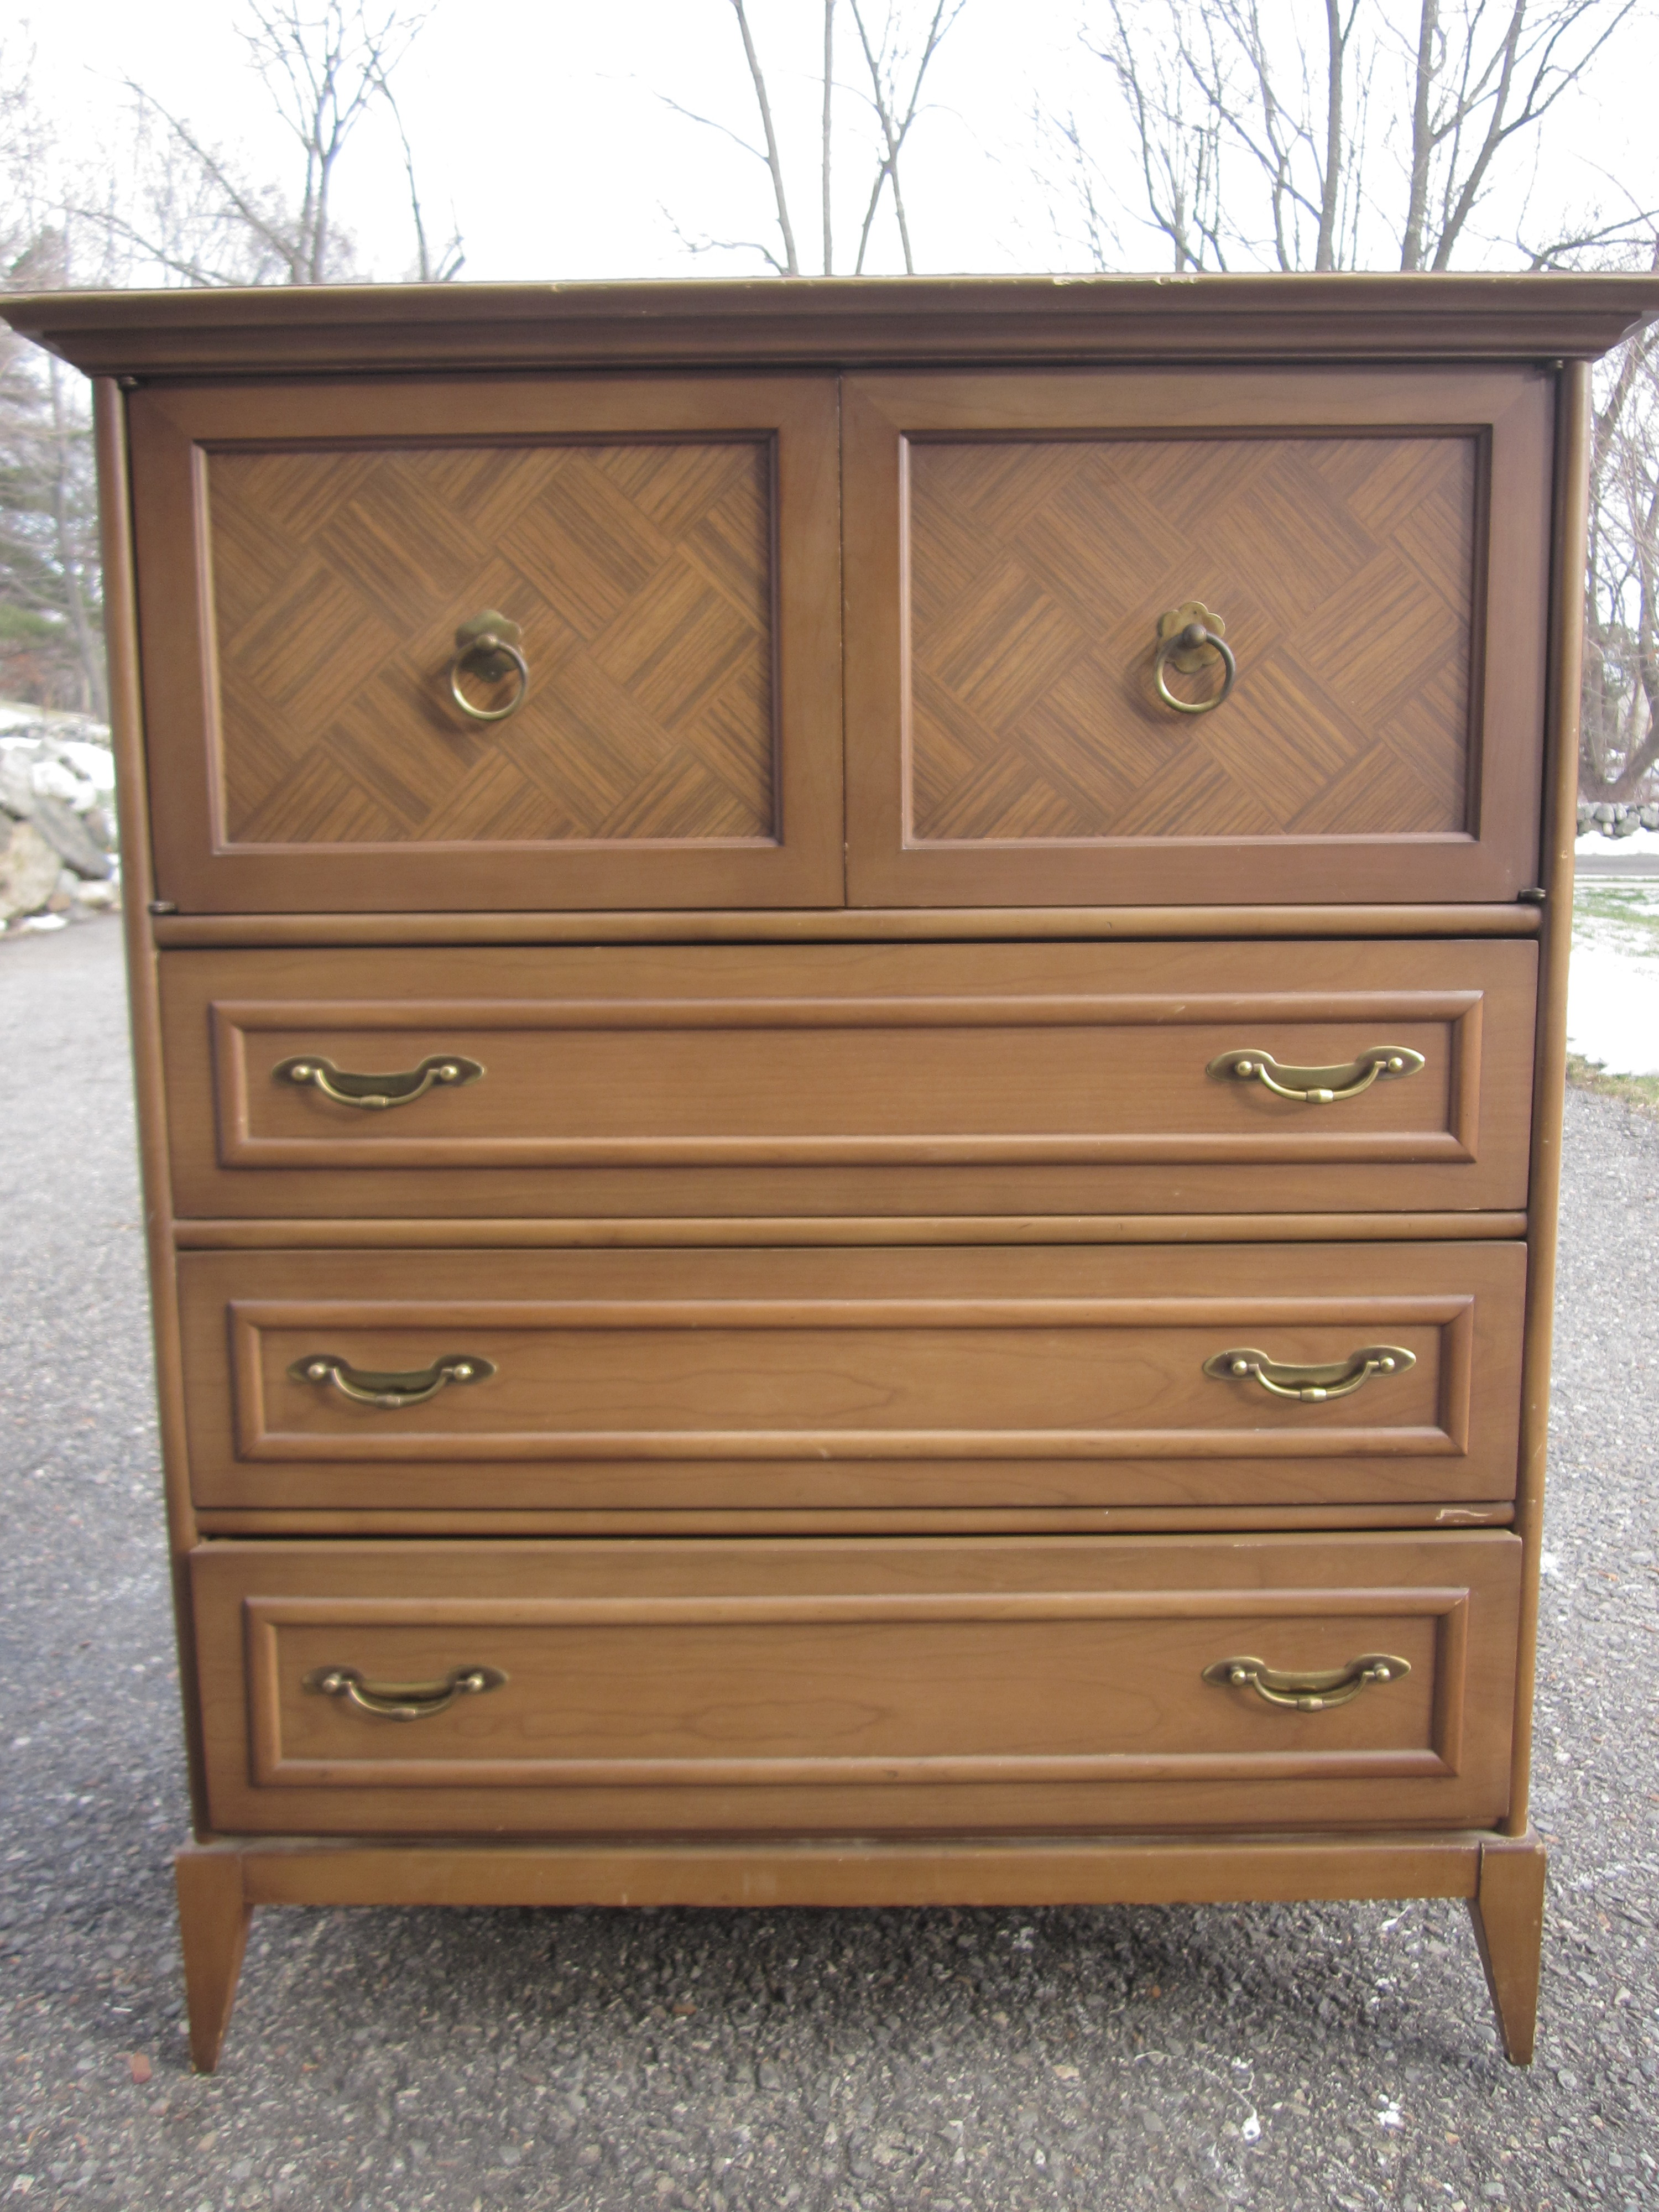 Elegant Broyhill Tall Chest